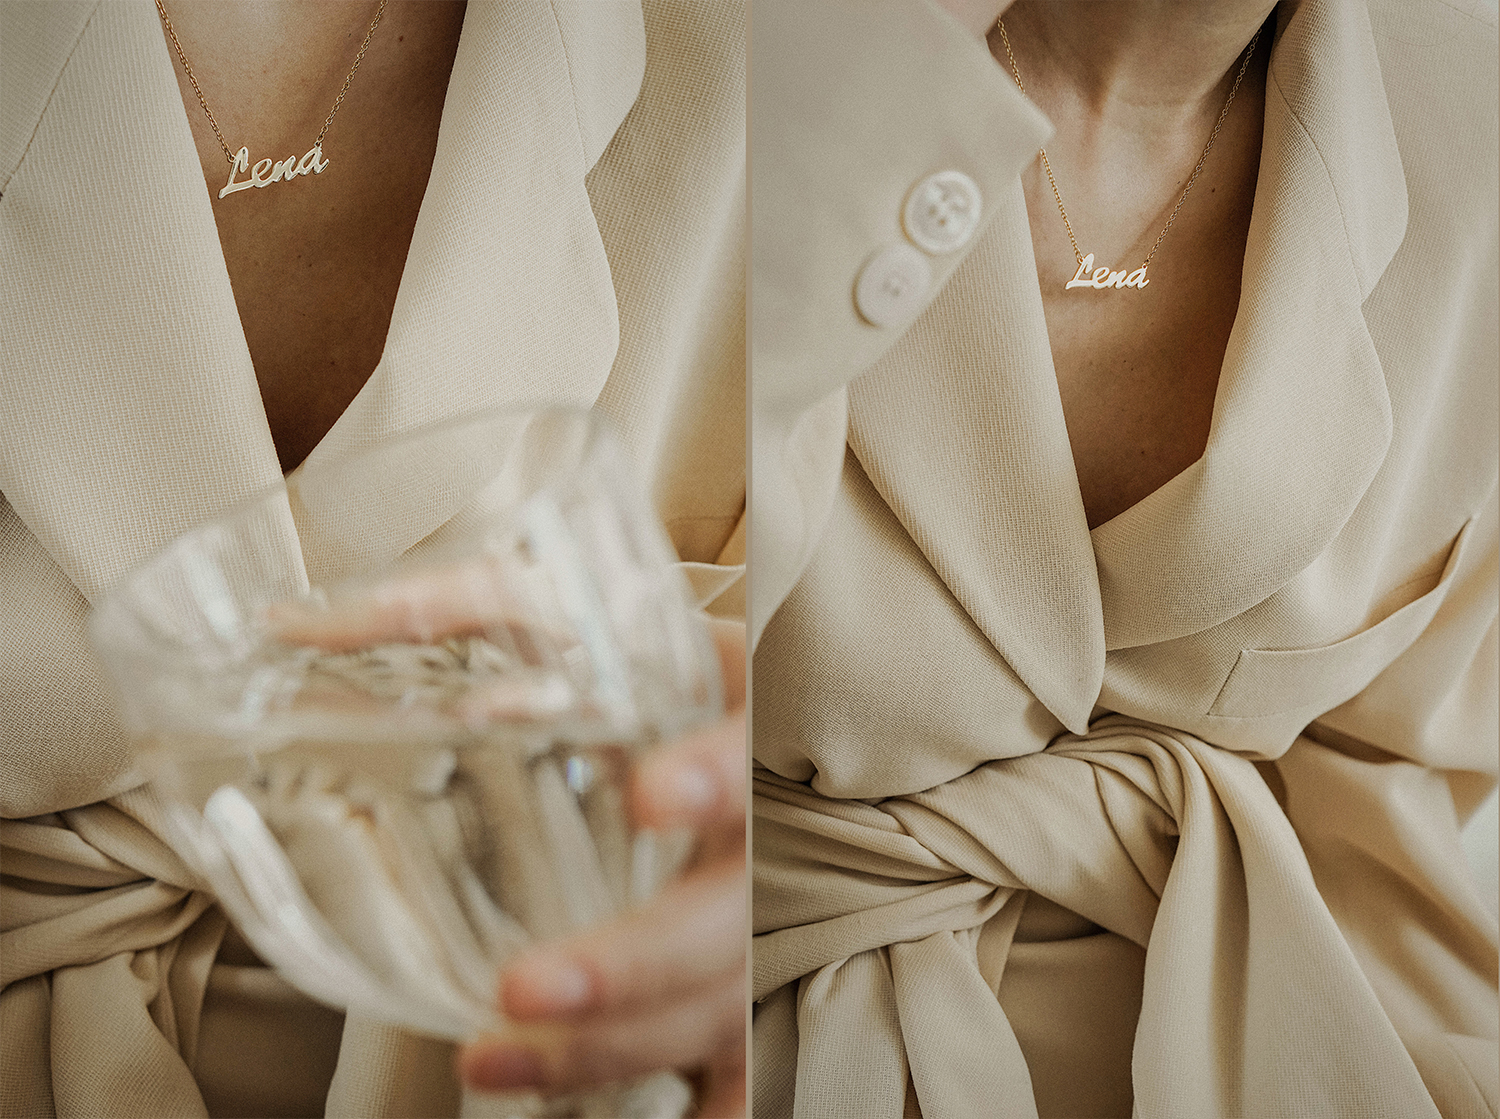 soufeel_name_necklace_nude_neutral_donna_karan_suit_fashion_style_lenajuice_thewhiteocean_02